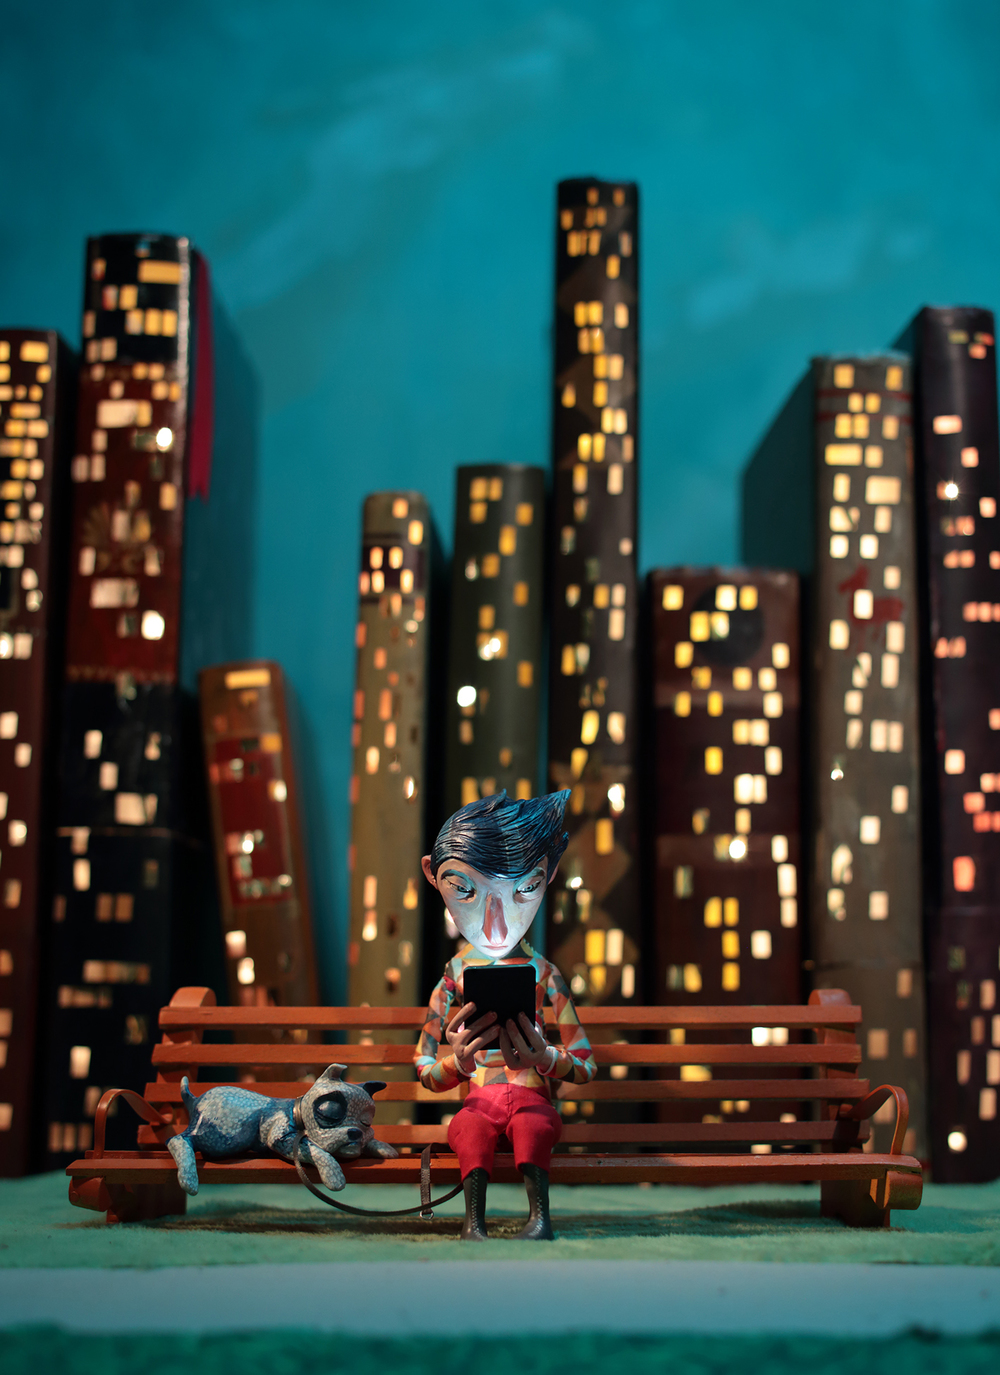 a fella sits with his dog on a park bench reading a device with a skyline of books make into skyscrapers.